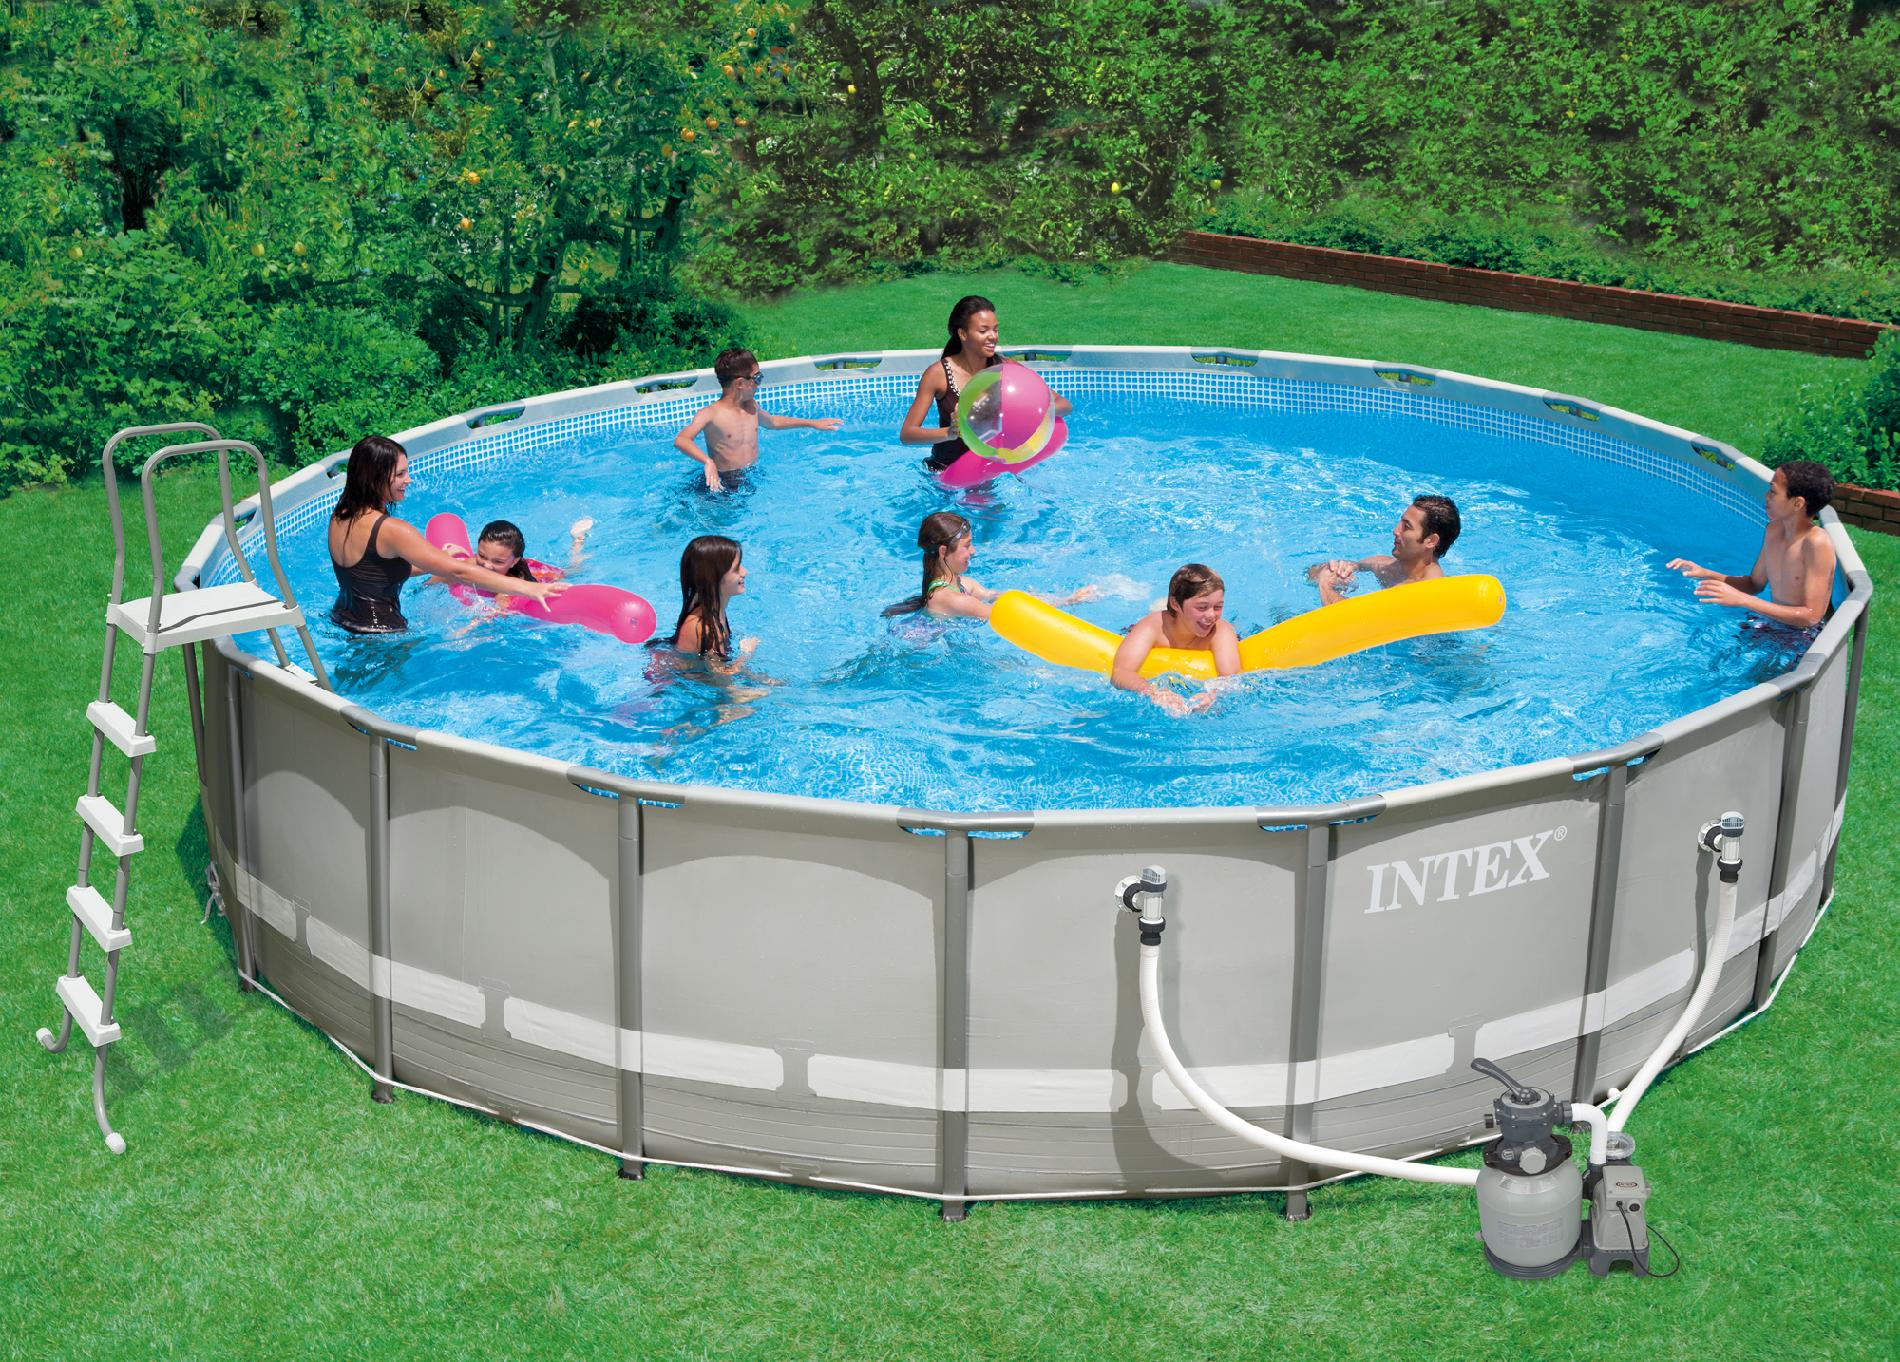 Familie Zwembad Intex Intex 20 Ft Ultra Frame Pool Set Sears